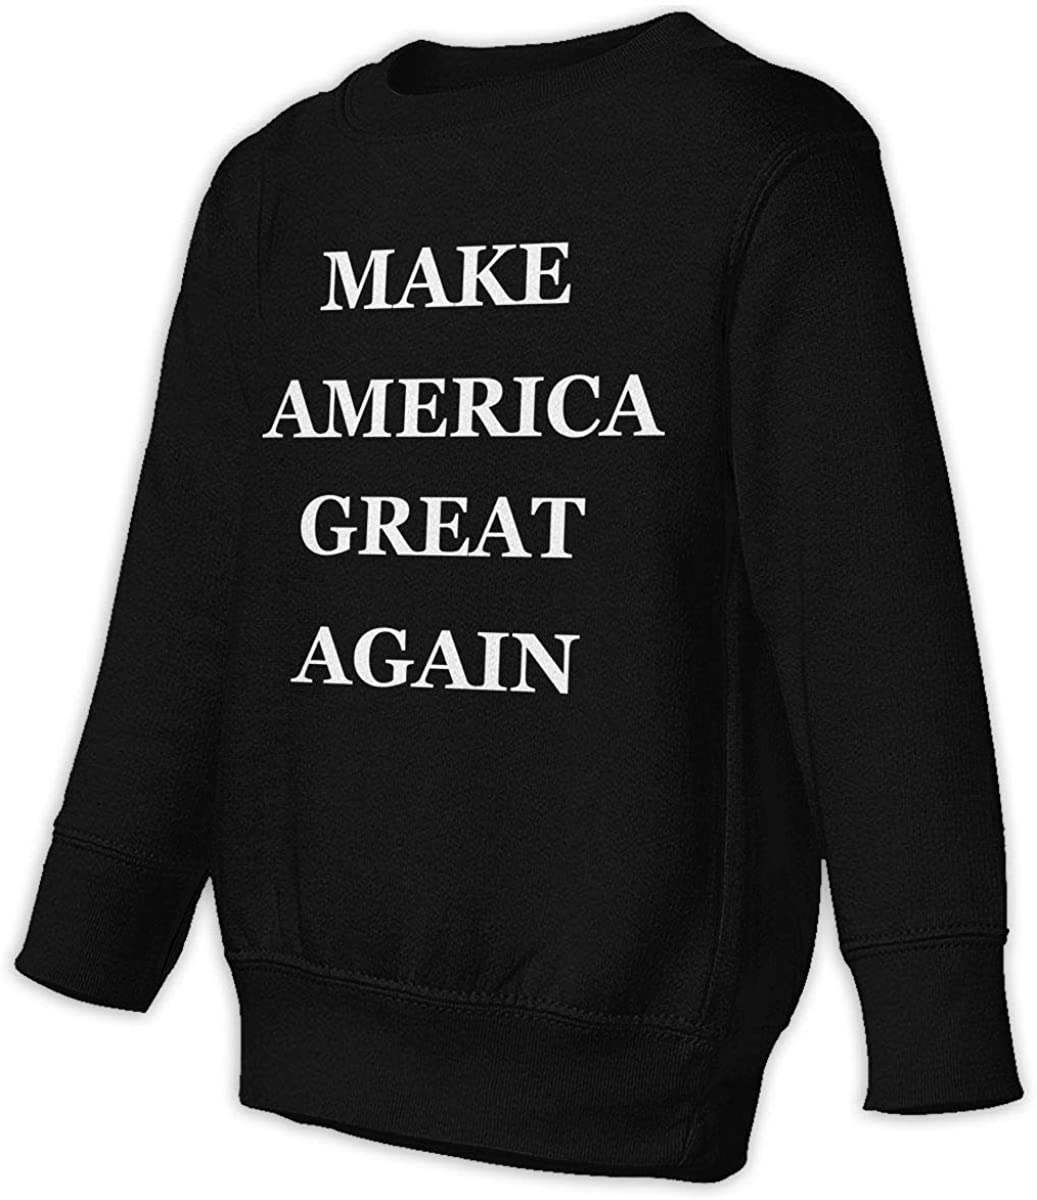 wudici Make America Great Again Boys Girls Pullover Sweaters Crewneck Sweatshirts Clothes for 2-6 Years Old Children